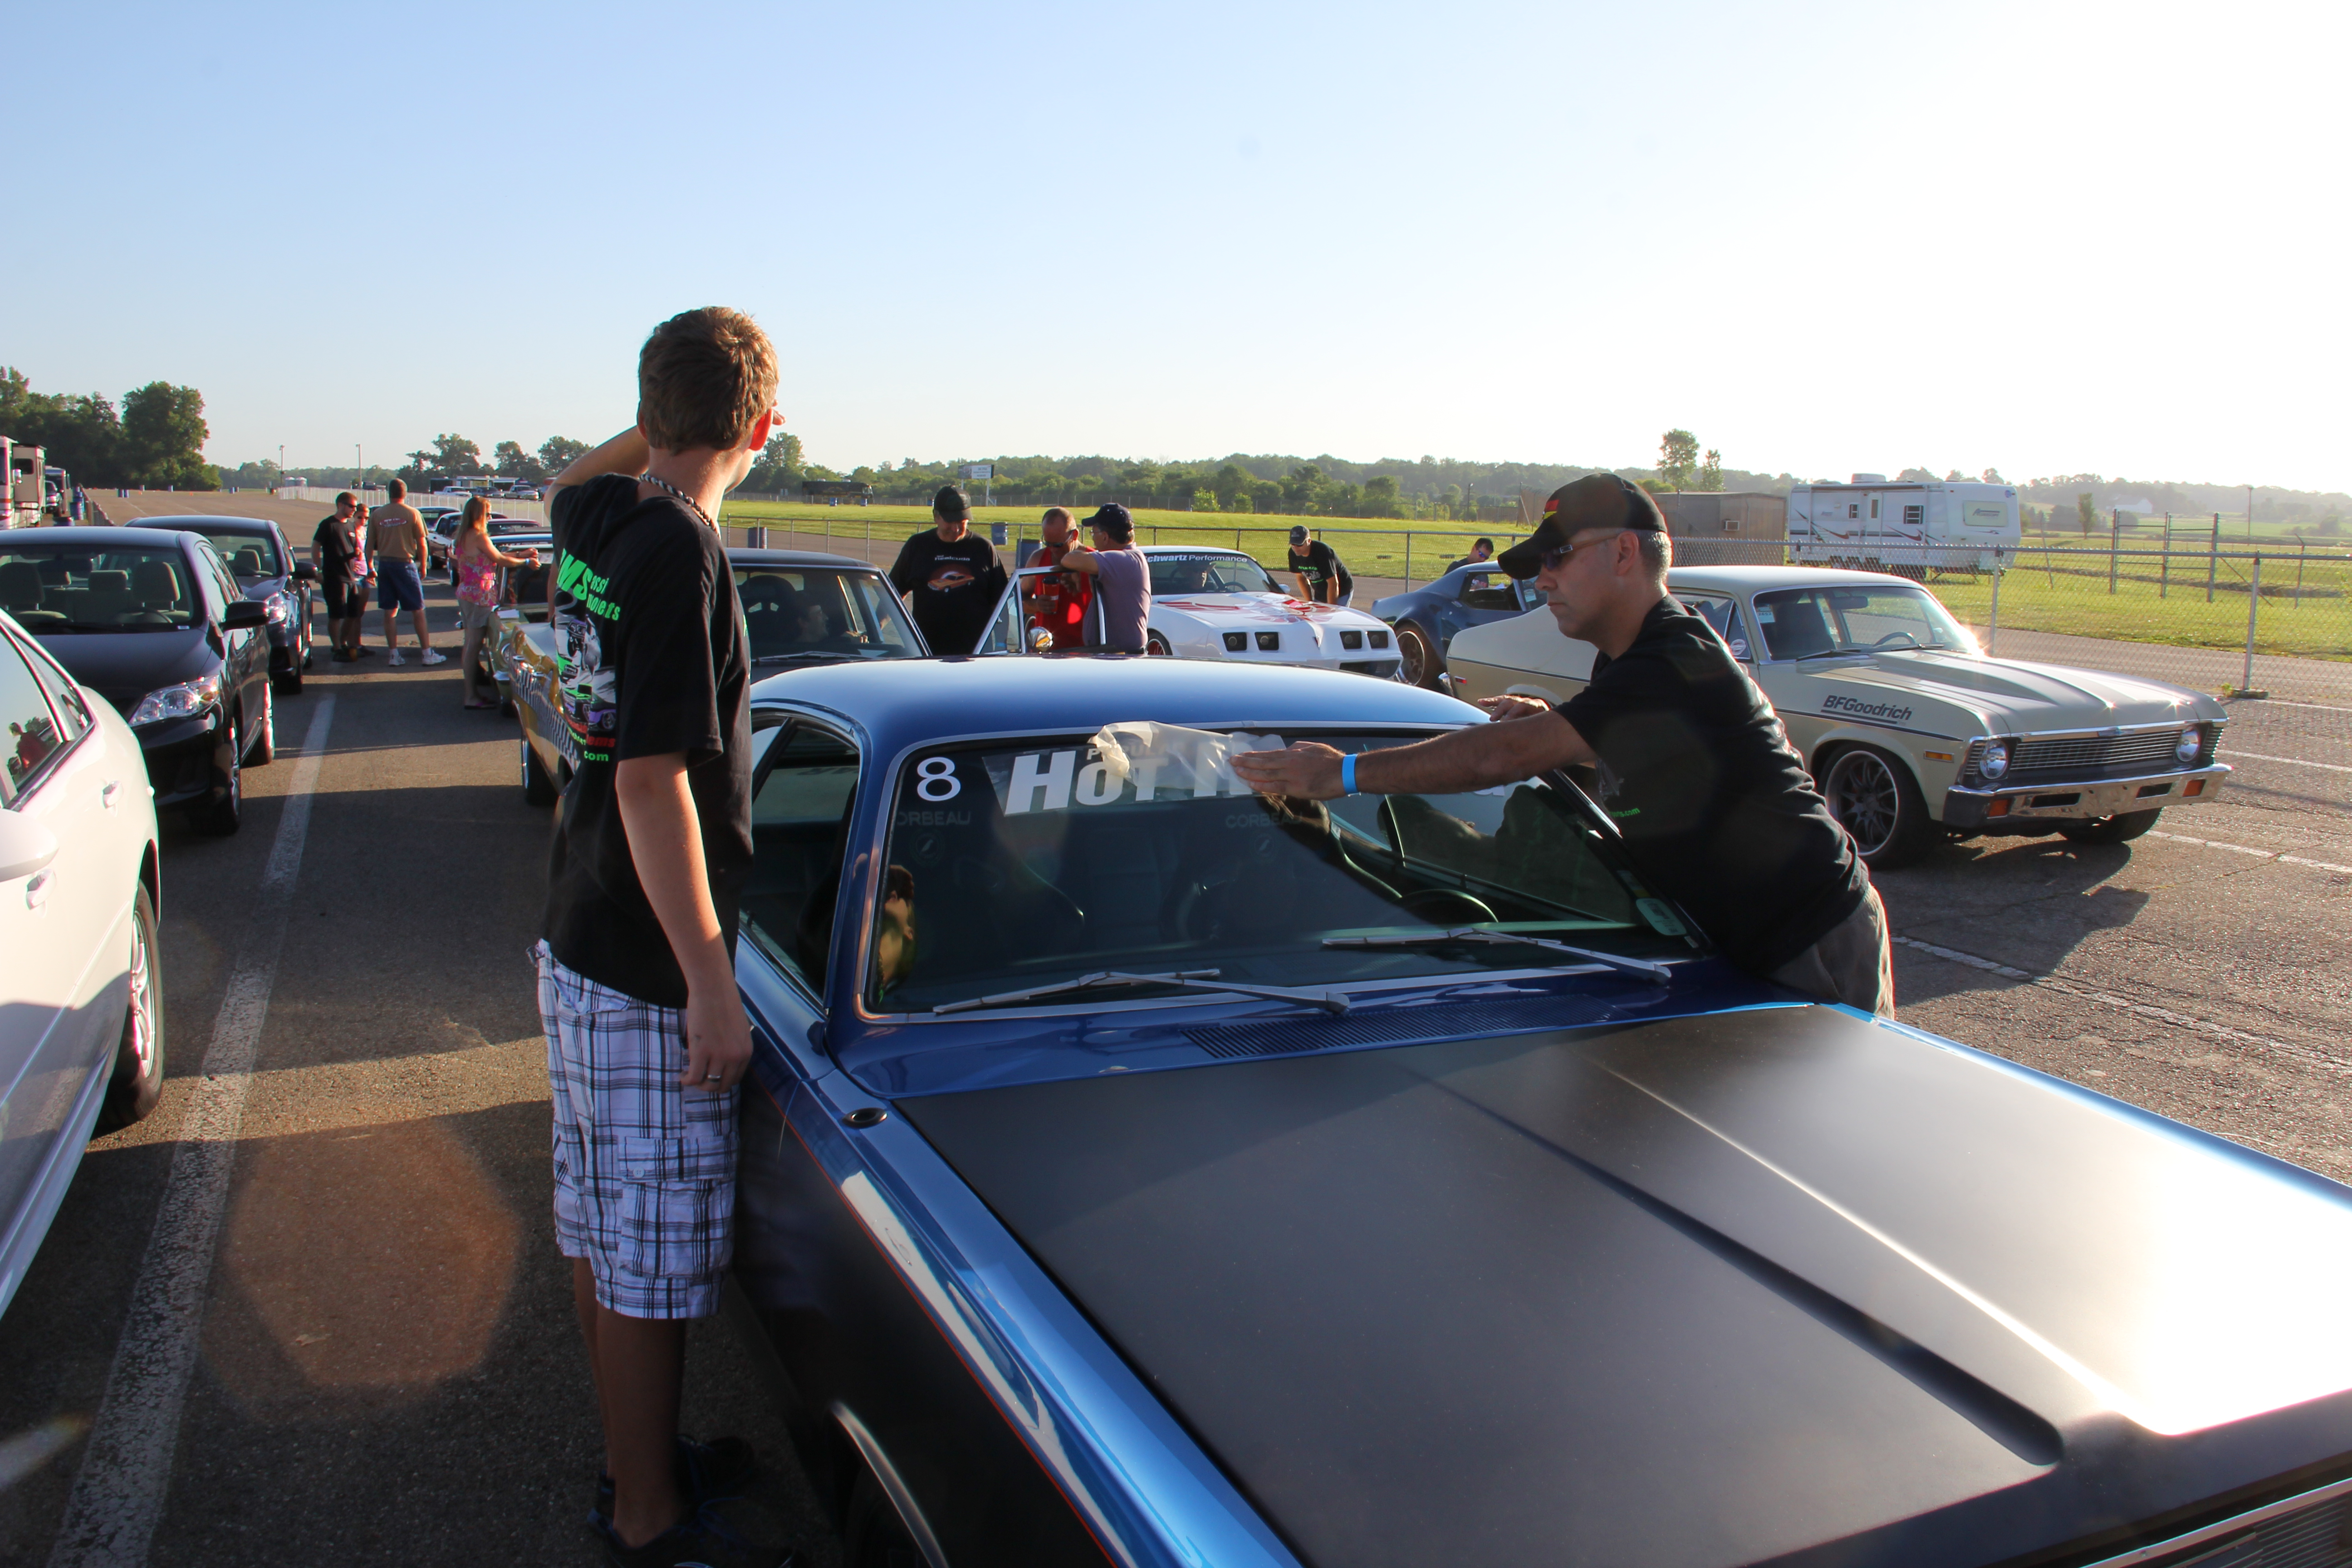 Participants add the required windshiled banner to vehicles in order race and compete.